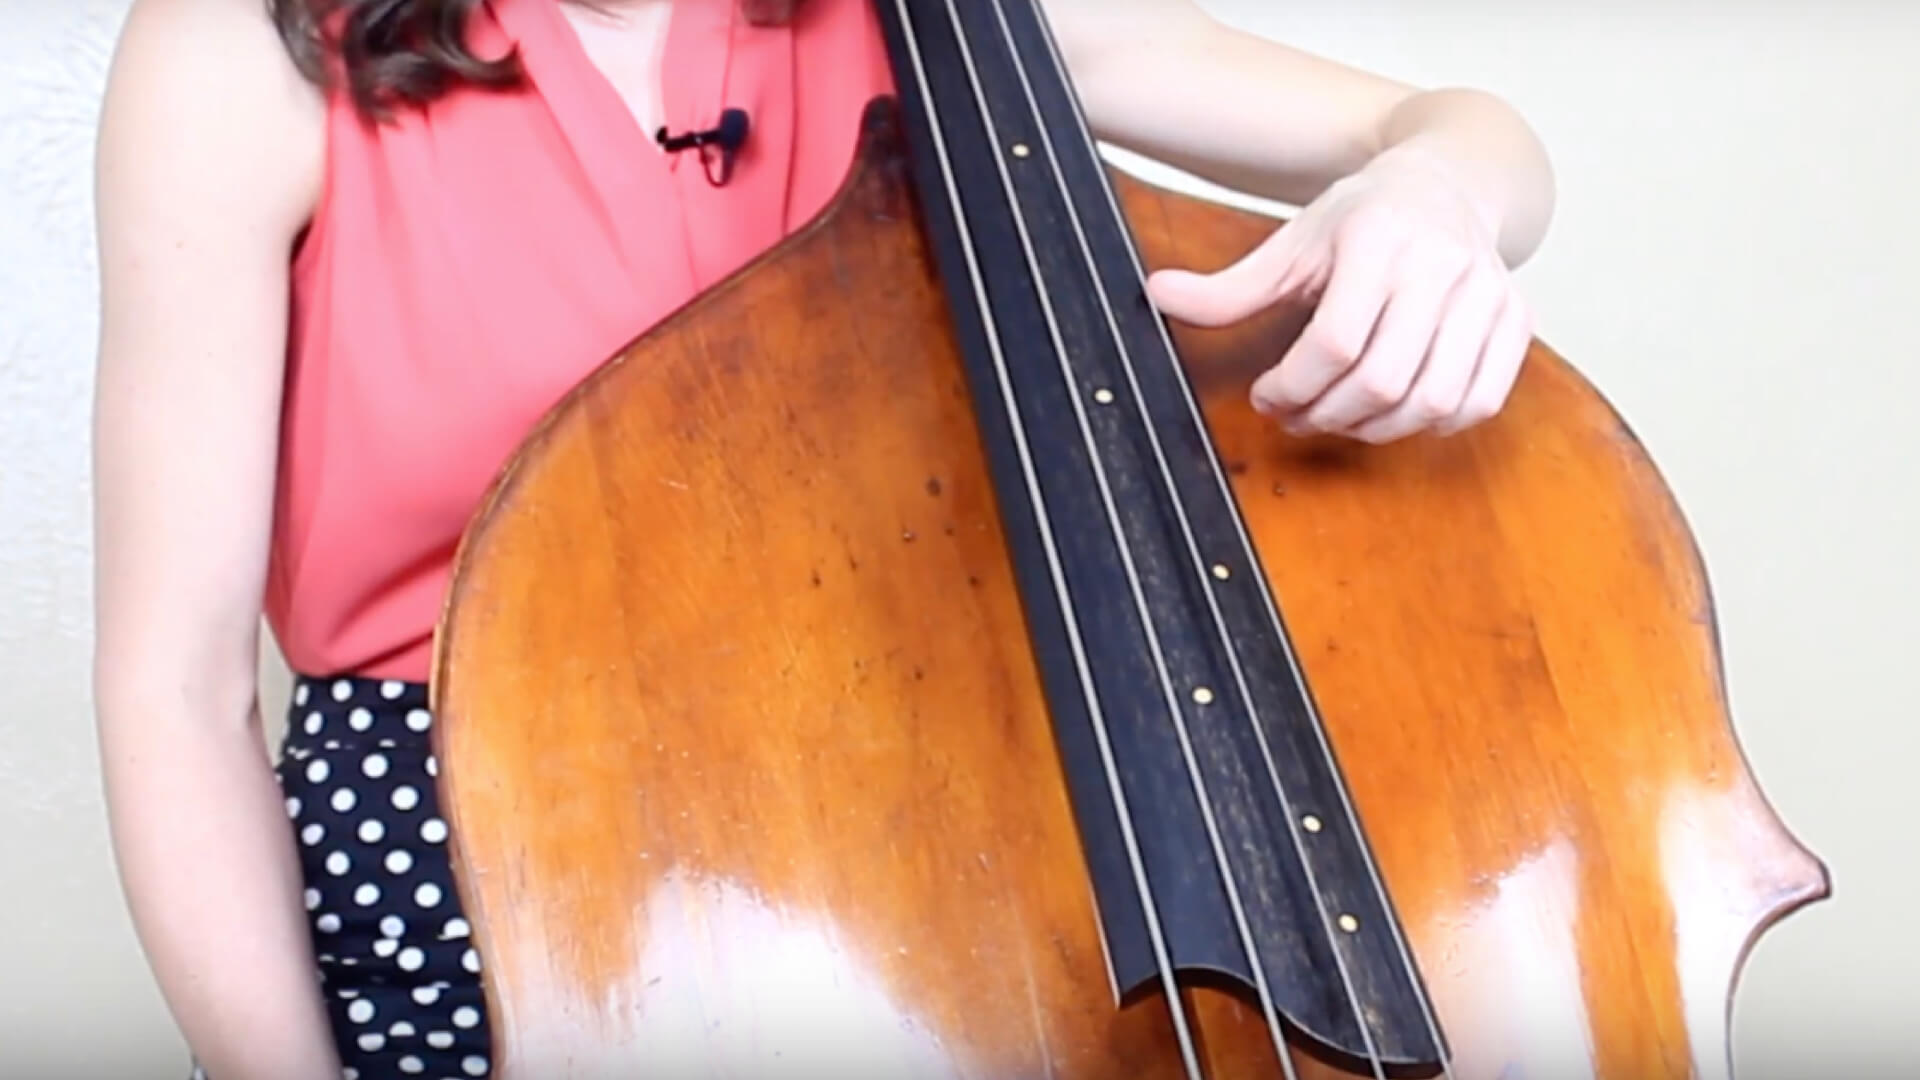 Double bass thumb position, young girl butt licking while they sleep